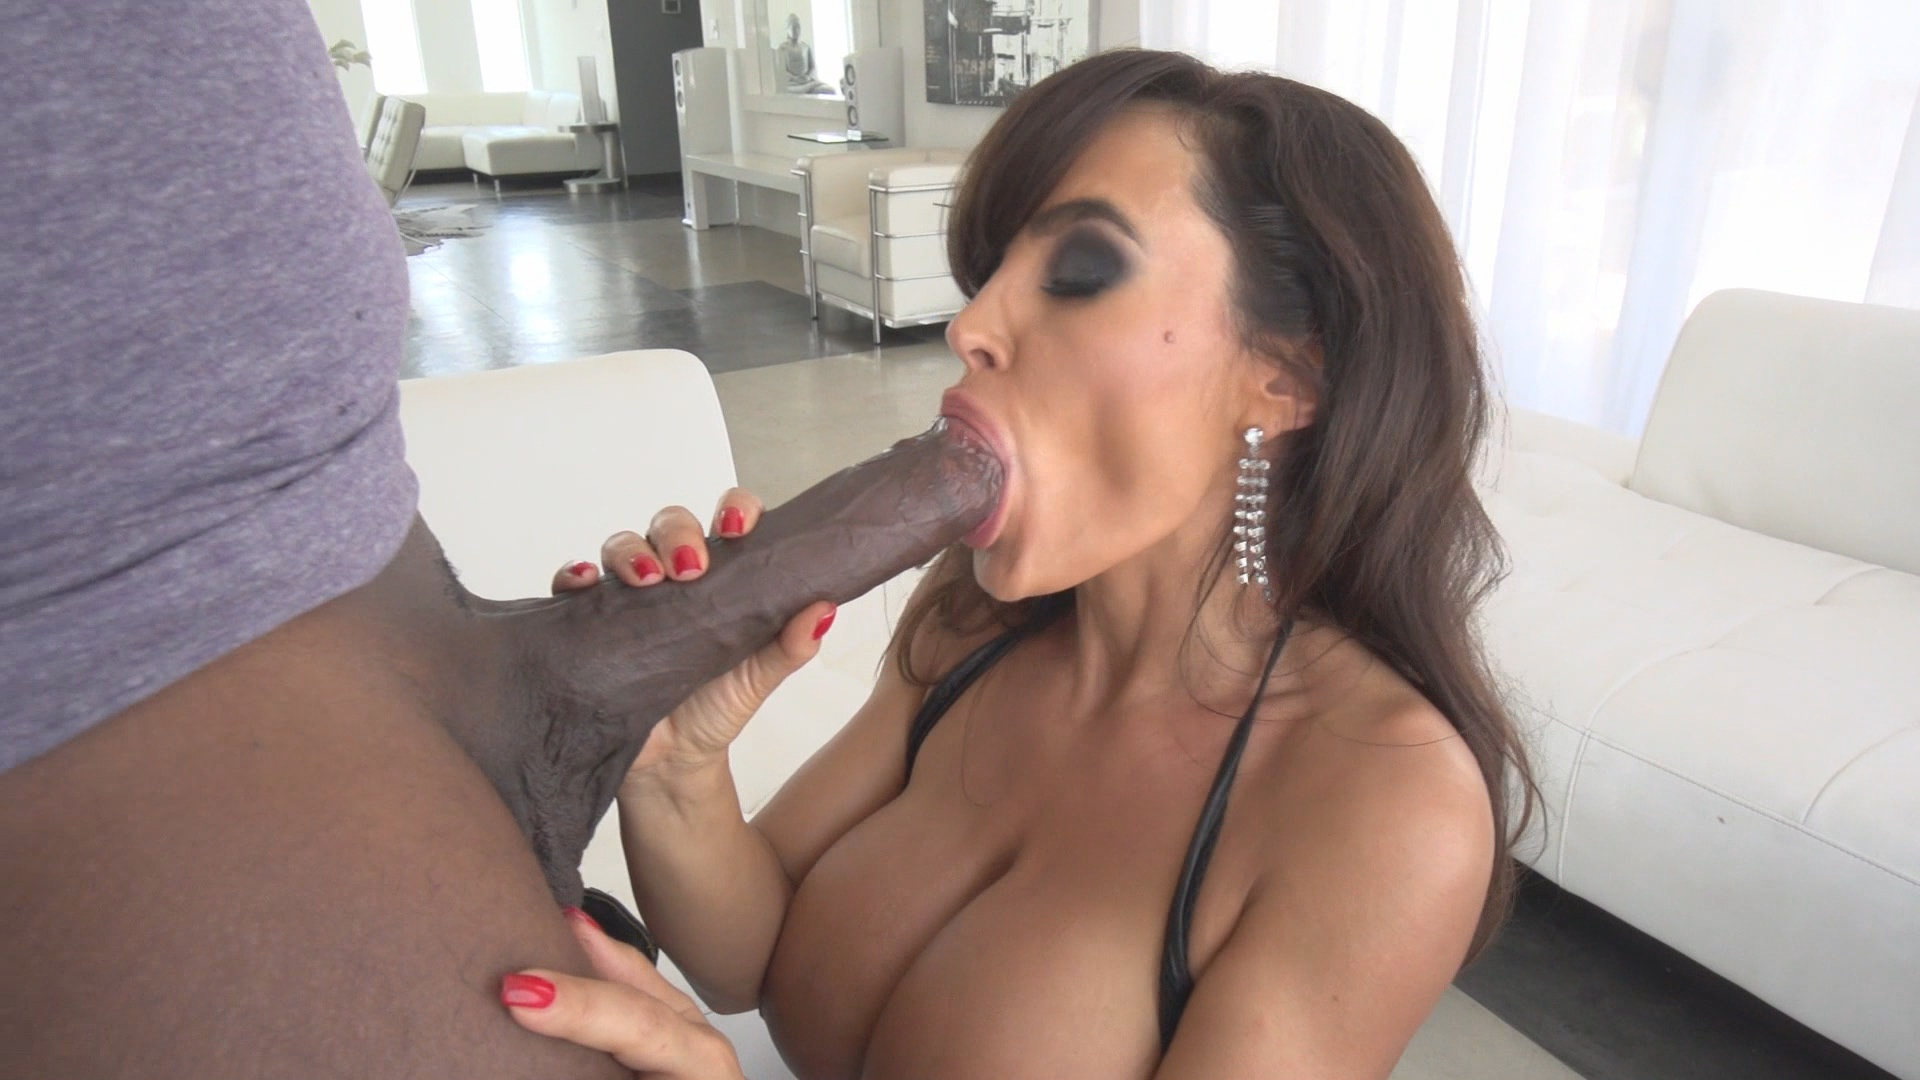 Lisa Ann's Black Out /  Interracial MILF porn! Featuring MANDINGO In Two Scenes and Lisa Ann In EVERY Scene in the adult DVD Lisa Ann's Black Out! Lisa Ann takes on the ninth wonder of the world…Mandingo!